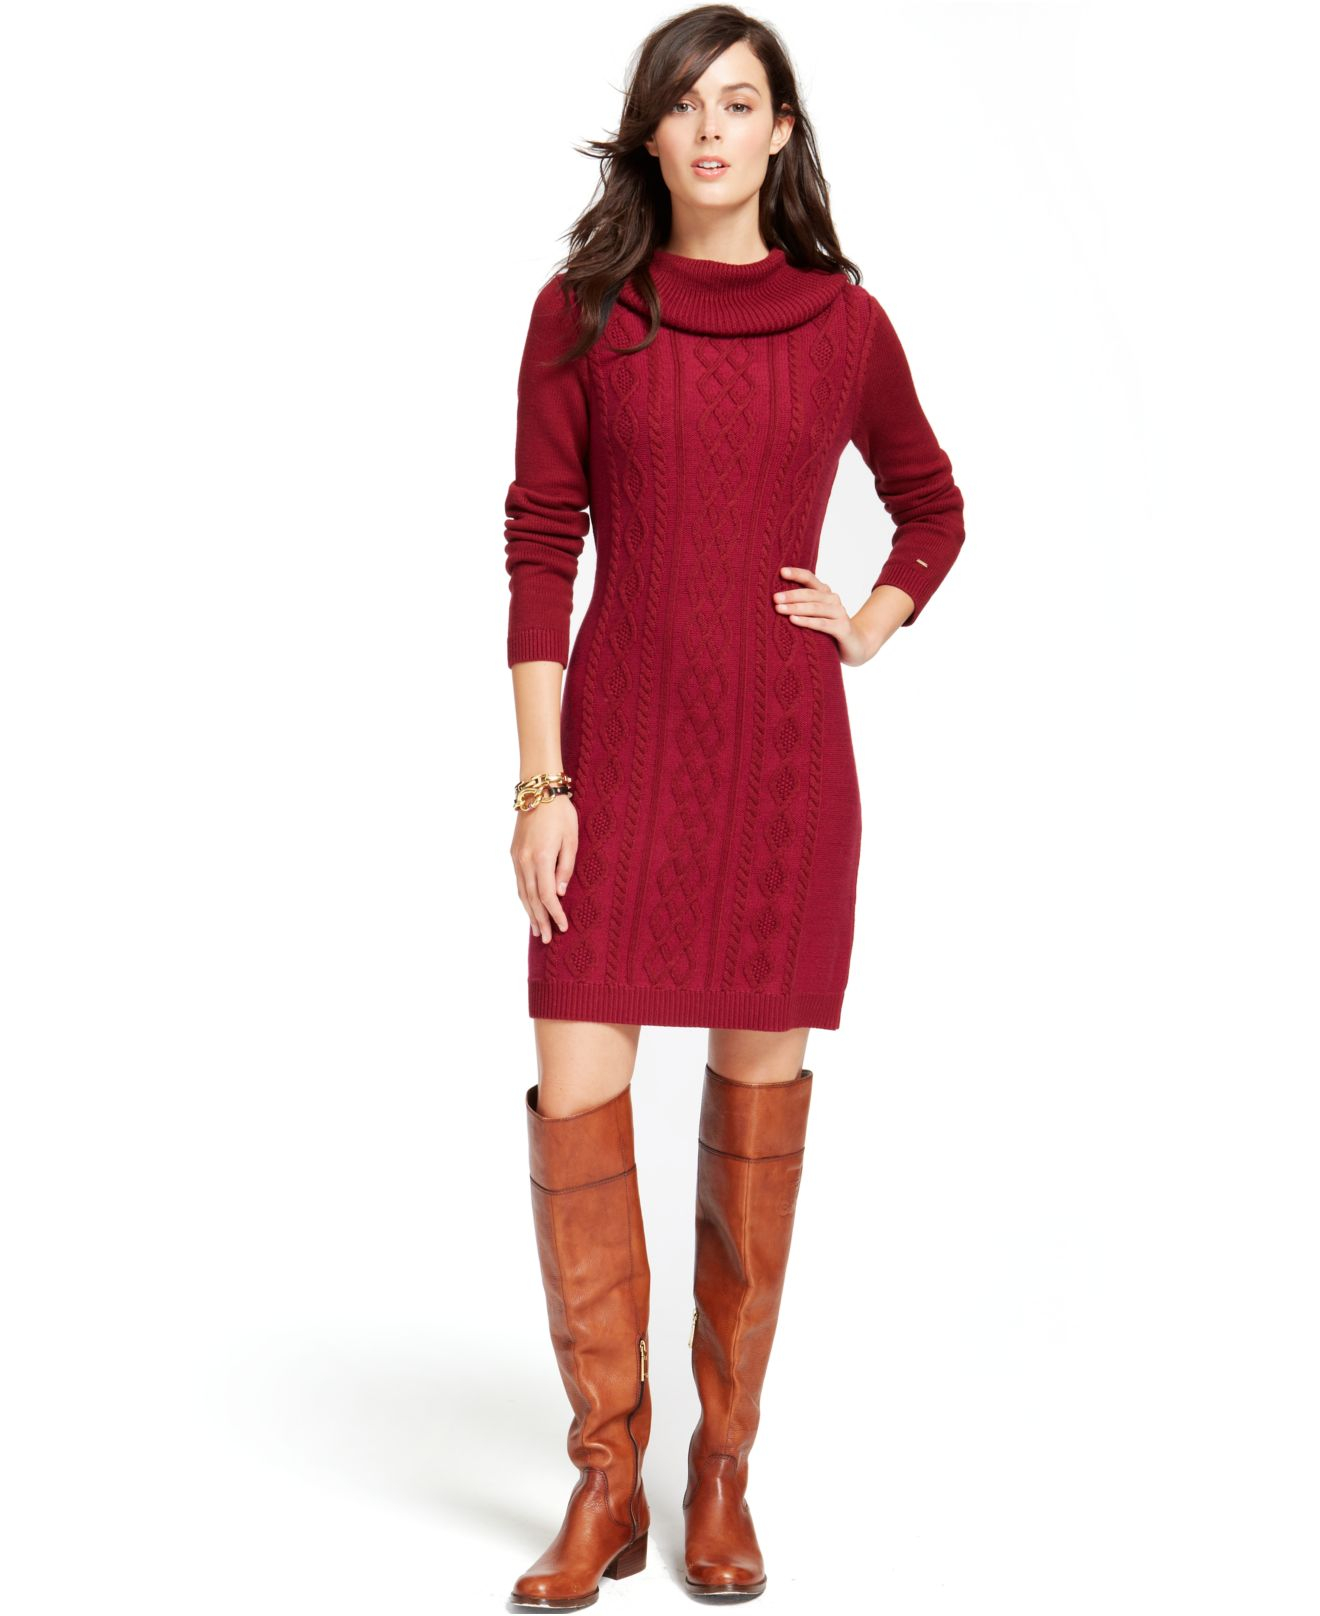 Tommy hilfiger Cable-Knit Cowl-Neck Sweaterdress in Red | Lyst